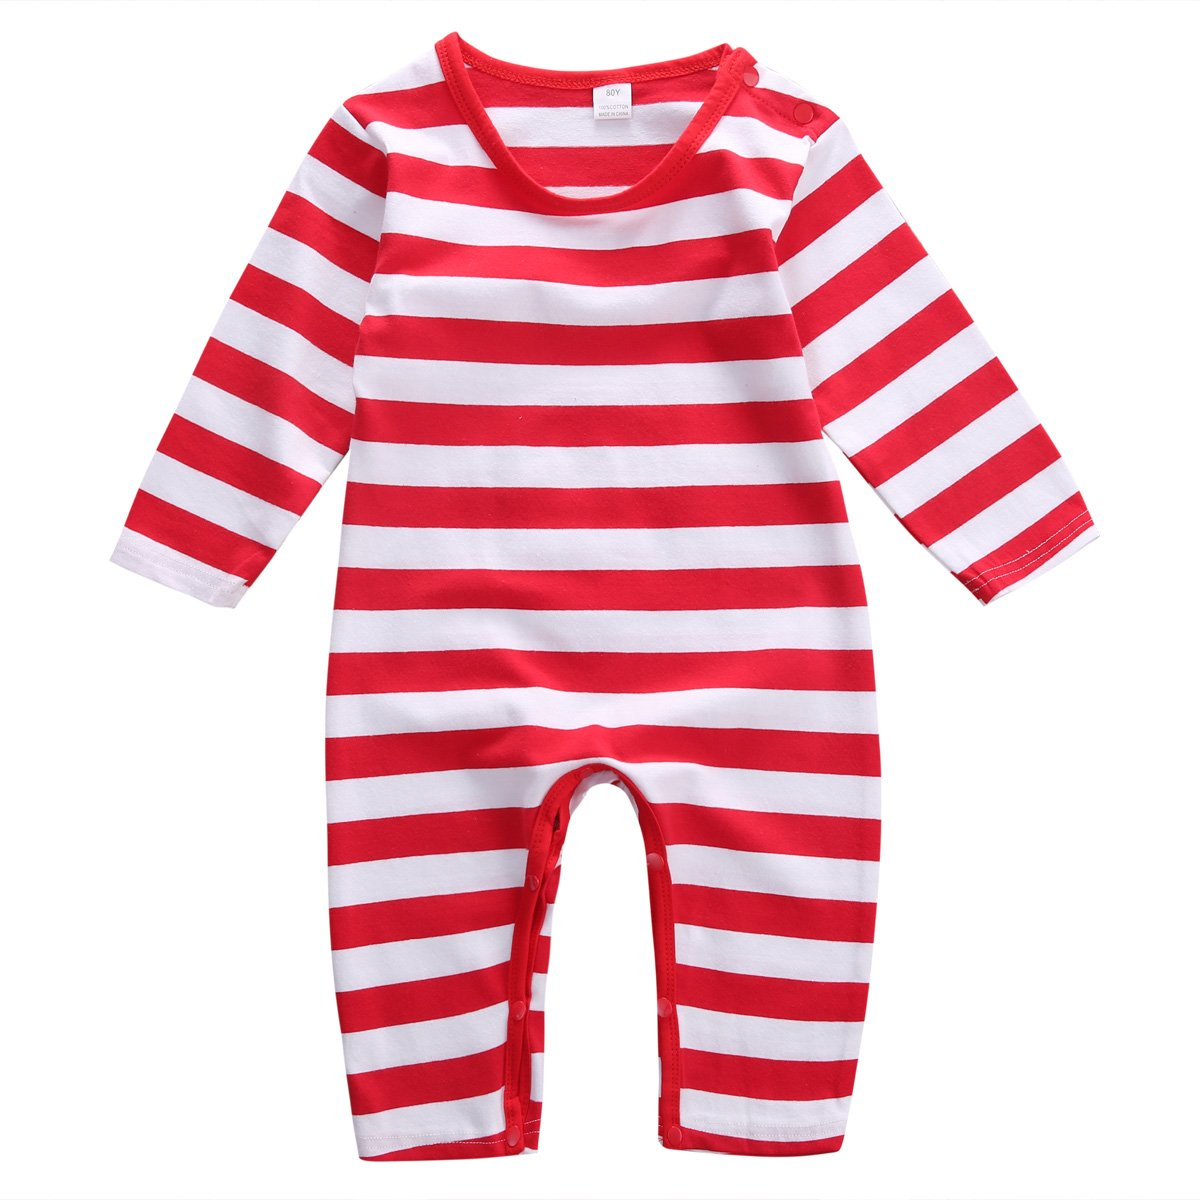 Magical Baby Baby Boys Girls Christmas Long Sleeve Red White Striped Snowman Romper